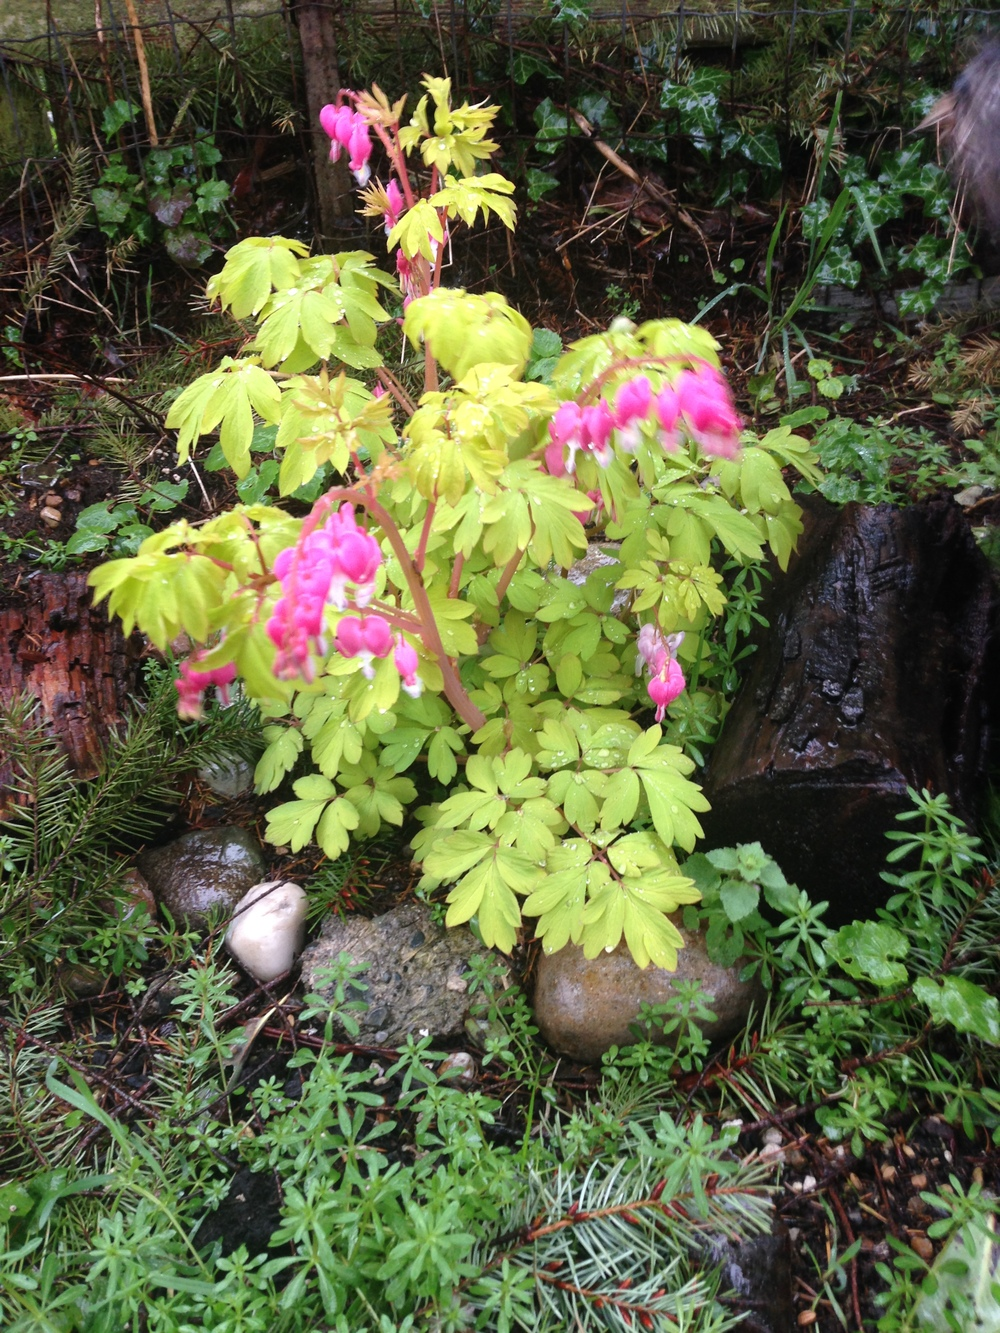 I have had this Bleeding Heart for over 5 years, it was in a pot for the past 4. I just planted it in the ground this past fall under a Douglas Fir in our back yard. I'll divide it this year.